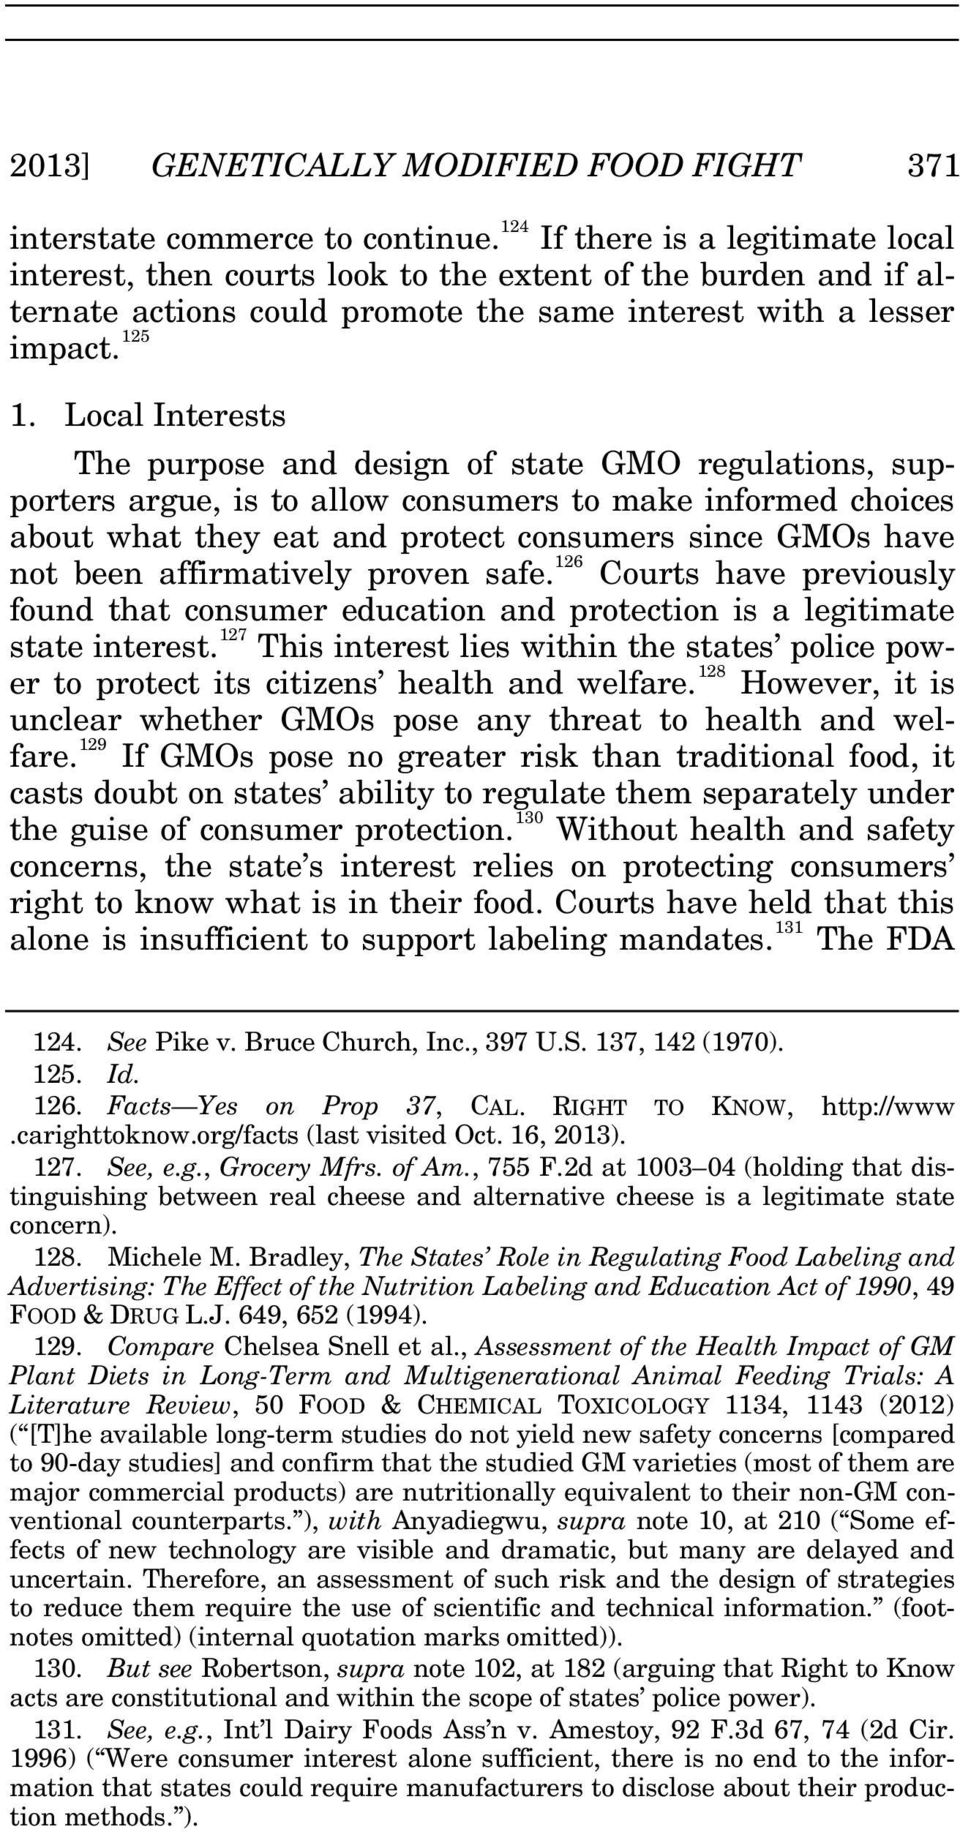 Local Interests The purpose and design of state GMO regulations, supporters argue, is to allow consumers to make informed choices about what they eat and protect consumers since GMOs have not been